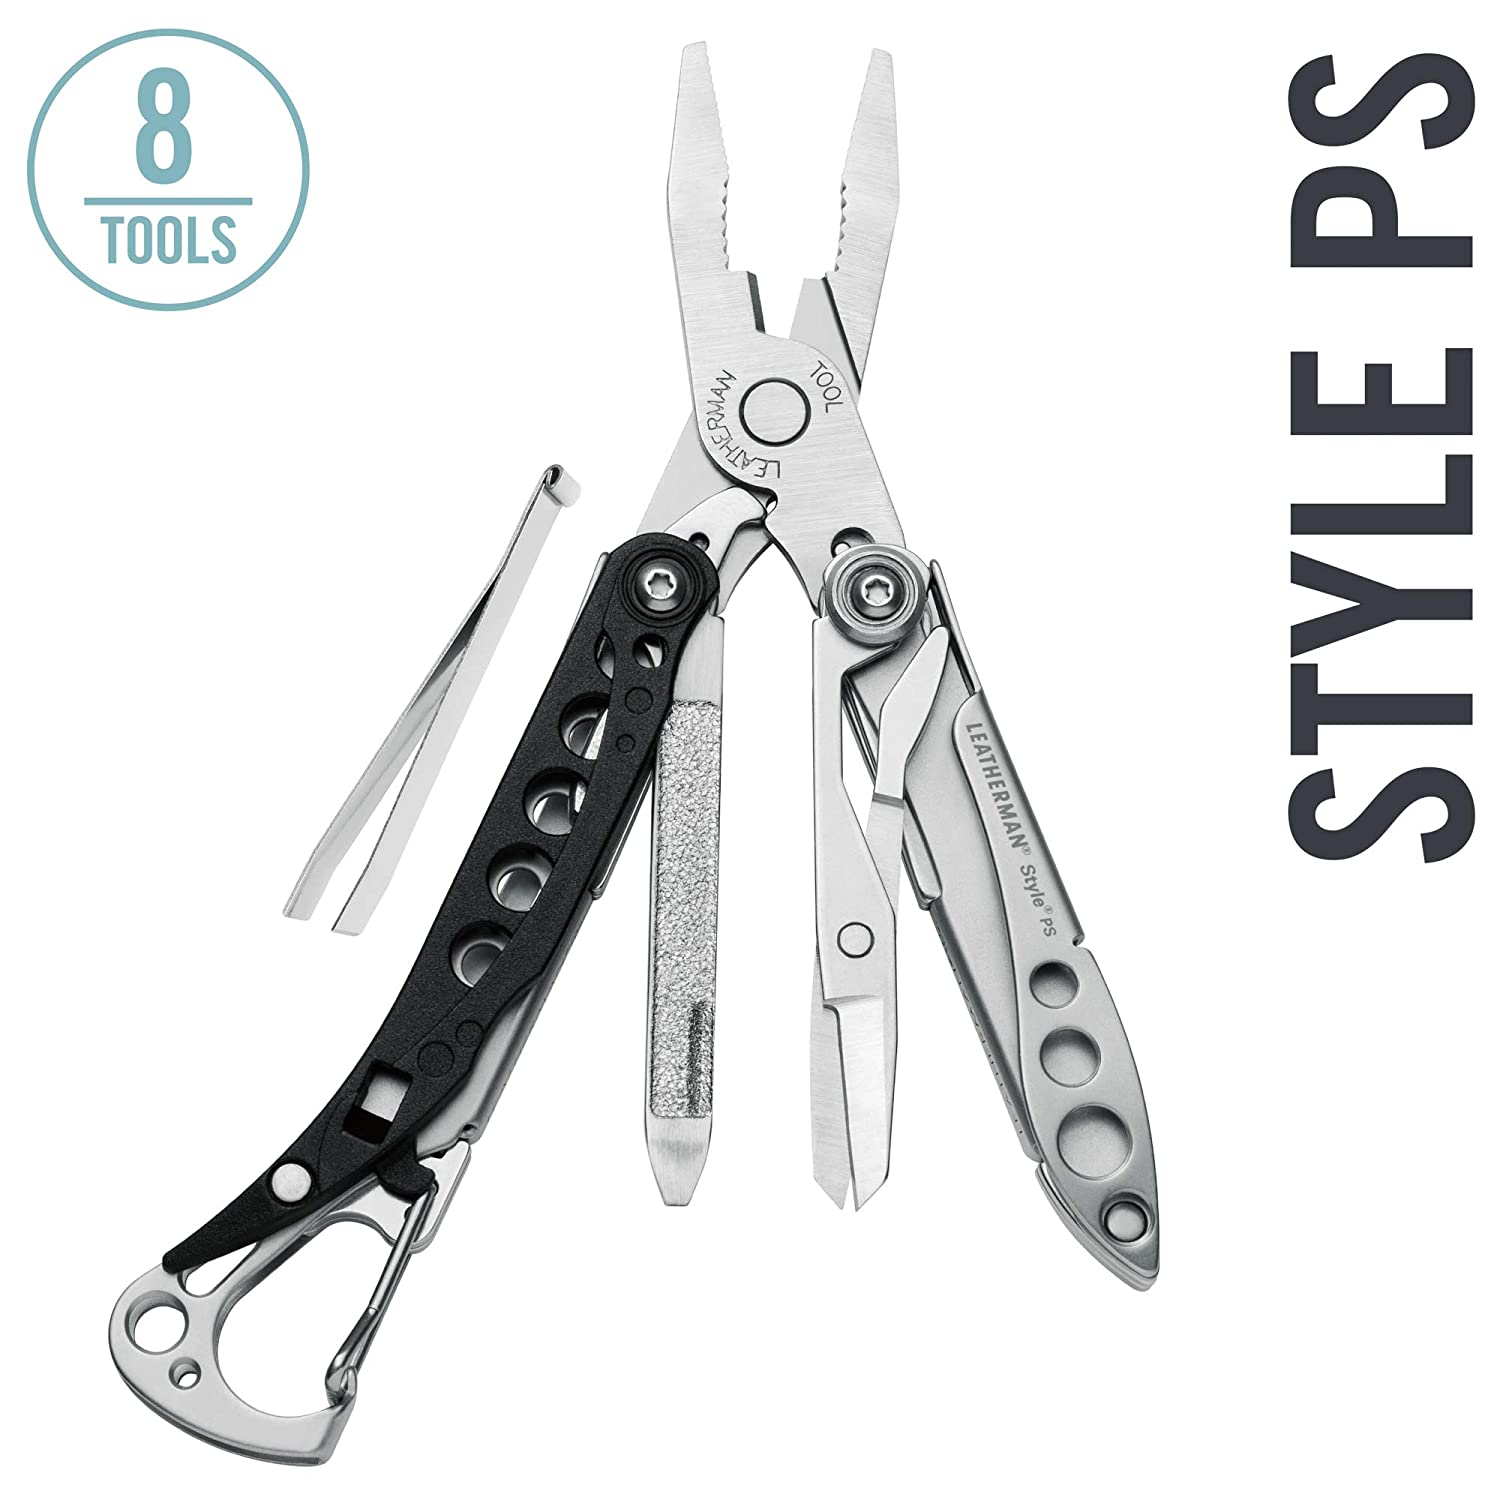 LEATHERMAN – Style PS Keychain Multitool with Spring-Action Scissors and Grooming Tools, Black